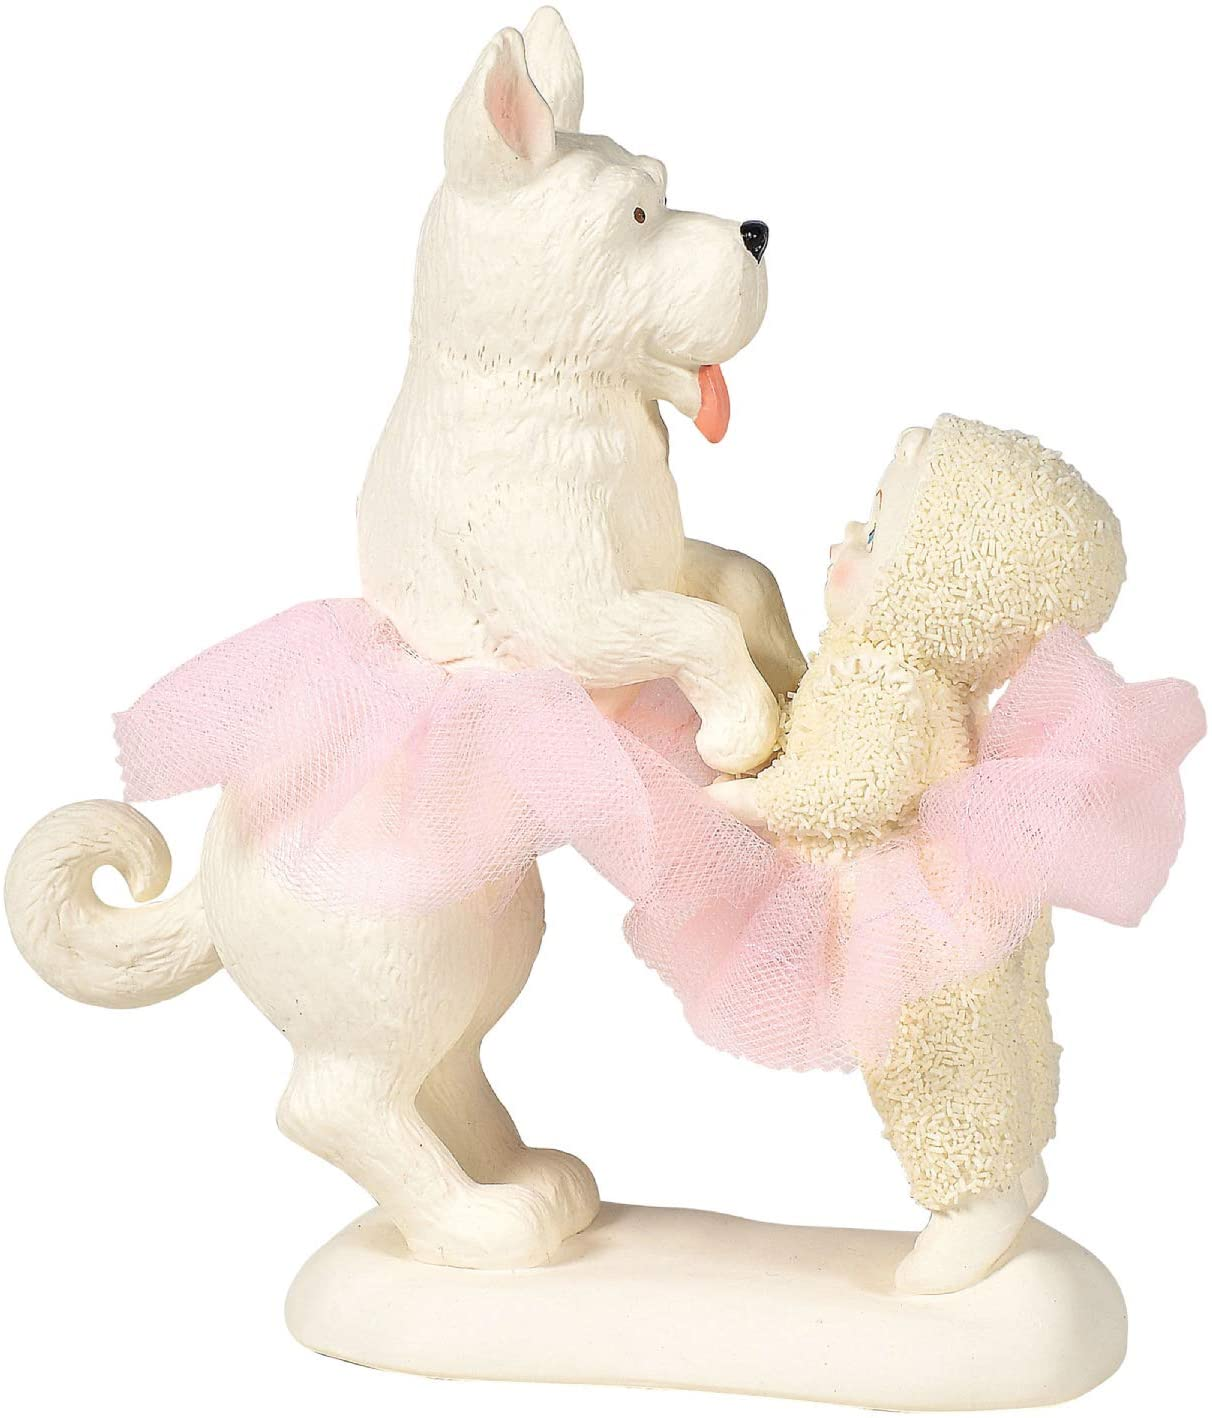 Department 56 Snowbabies Classics Twinkle Toes Figurine, 6.375 Inch, Multicolor